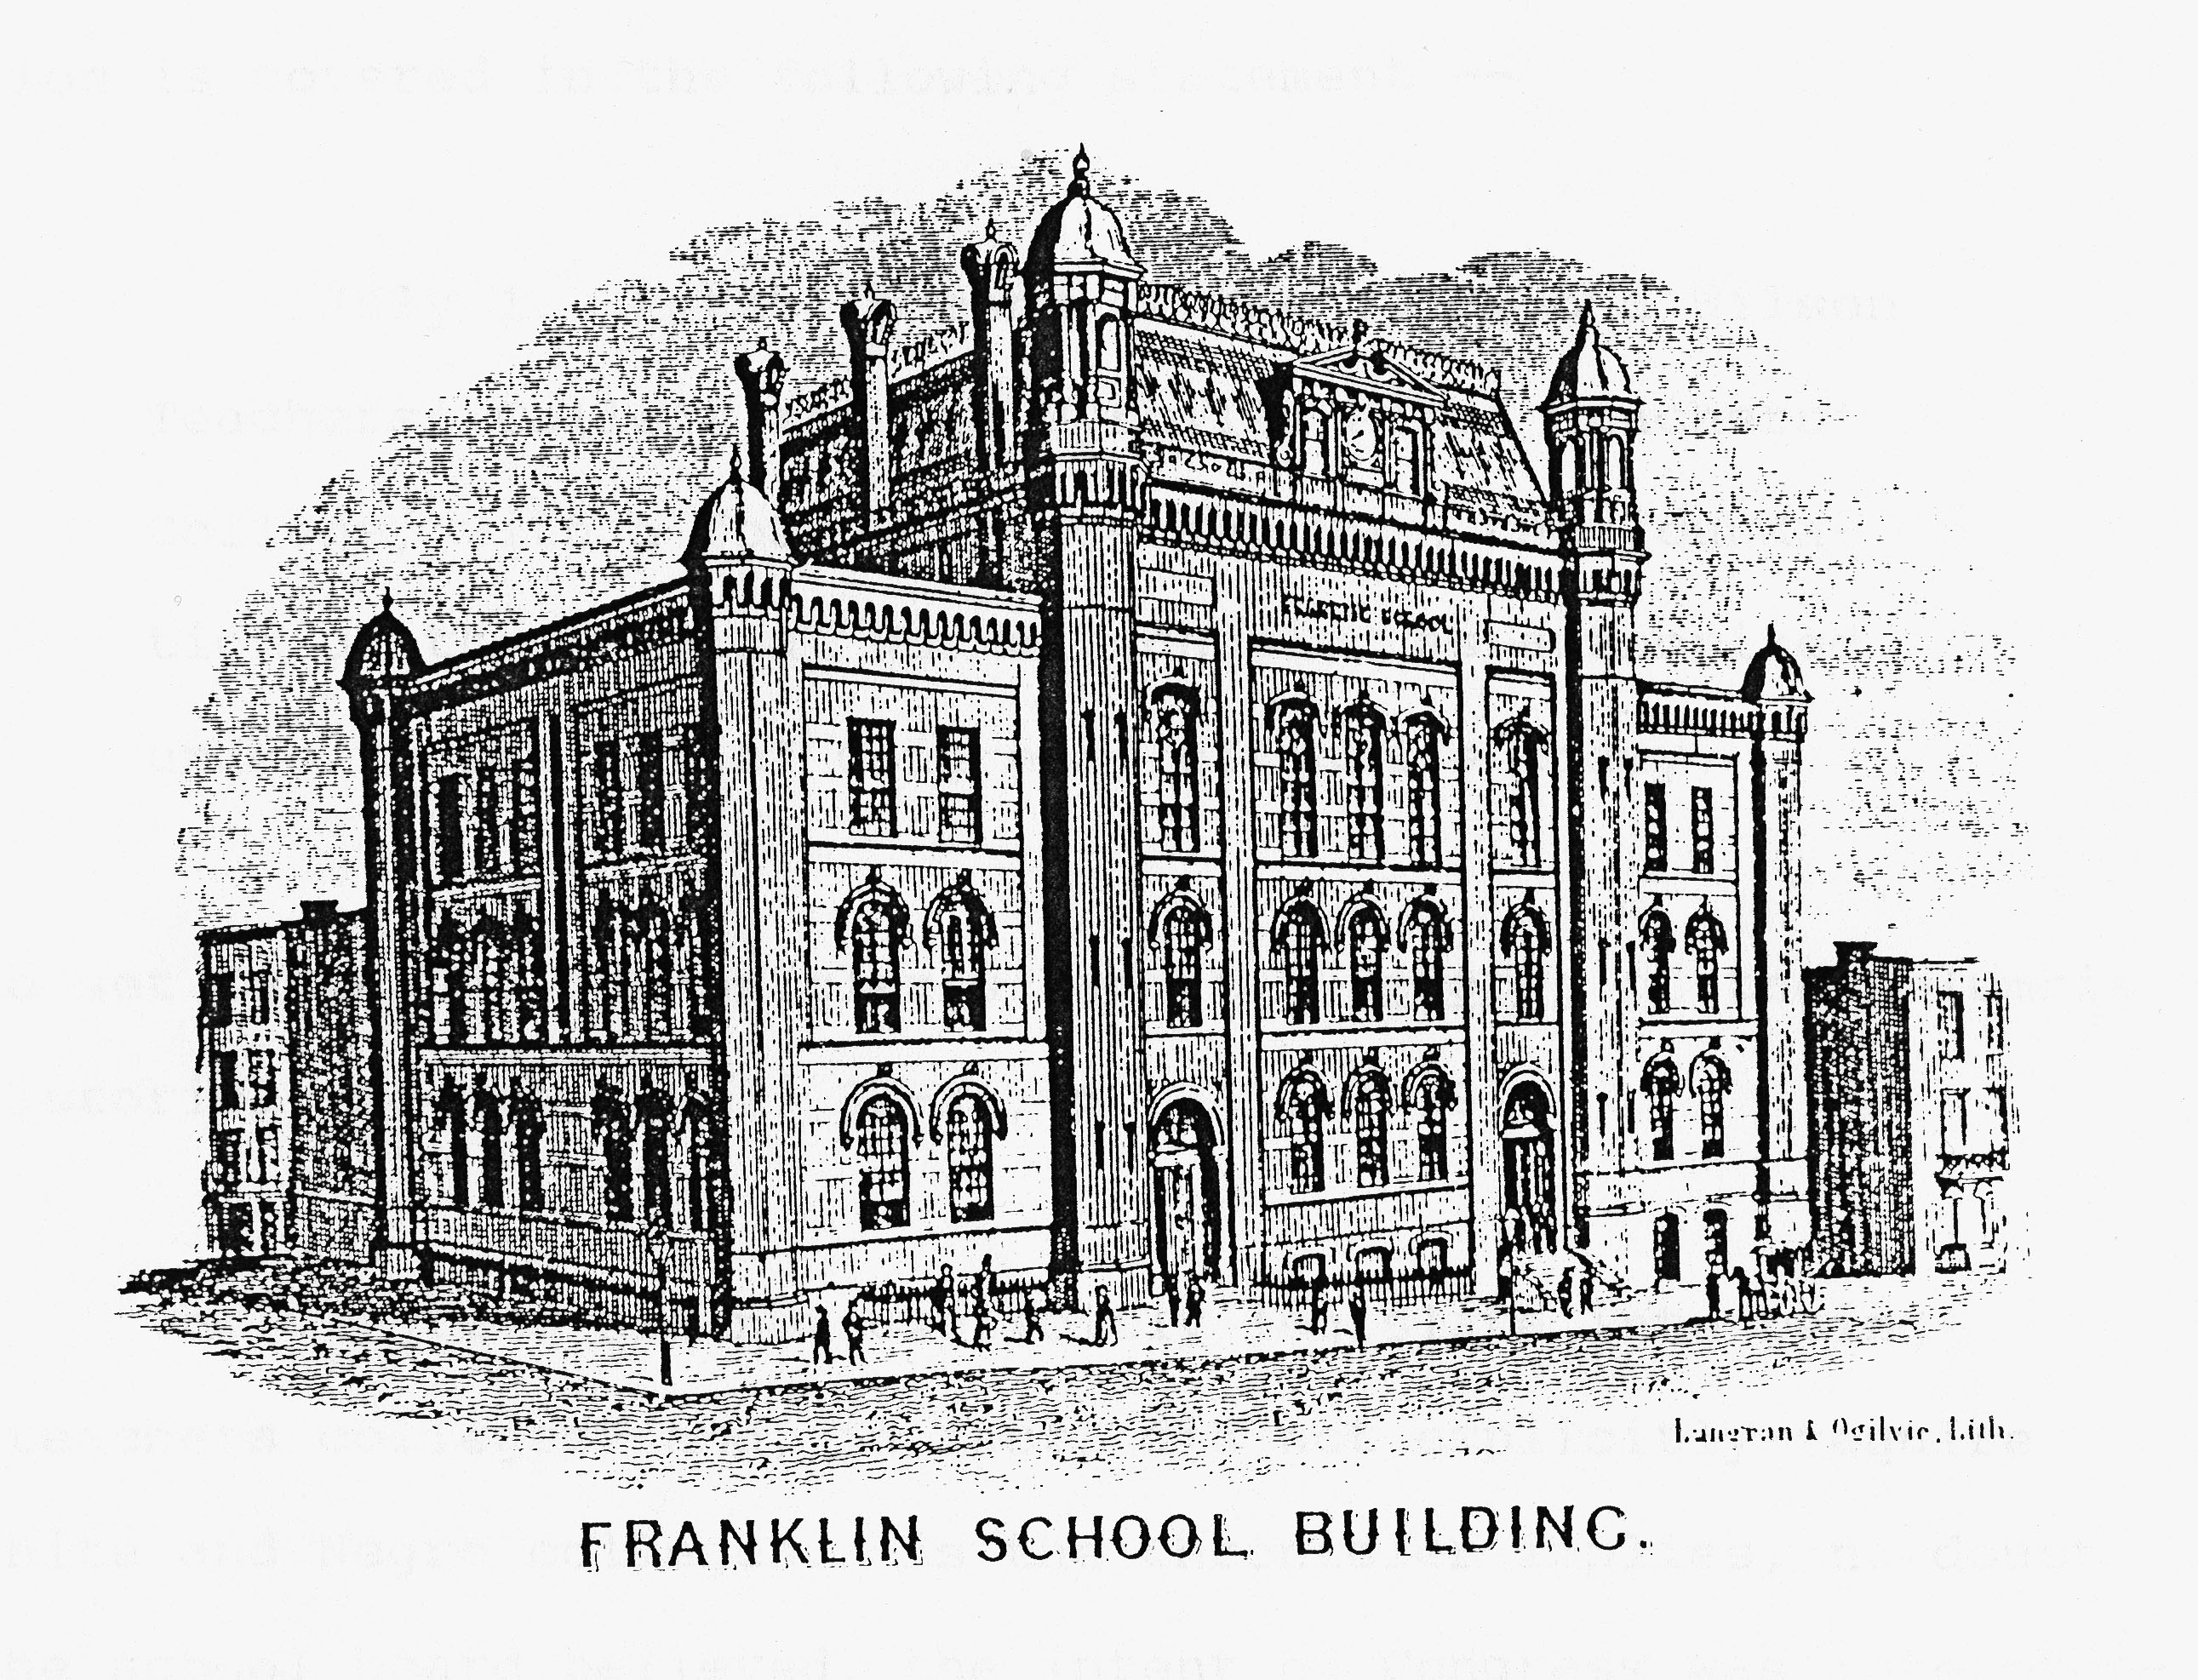 Miner Normal School -- Buildings -- Franklin School